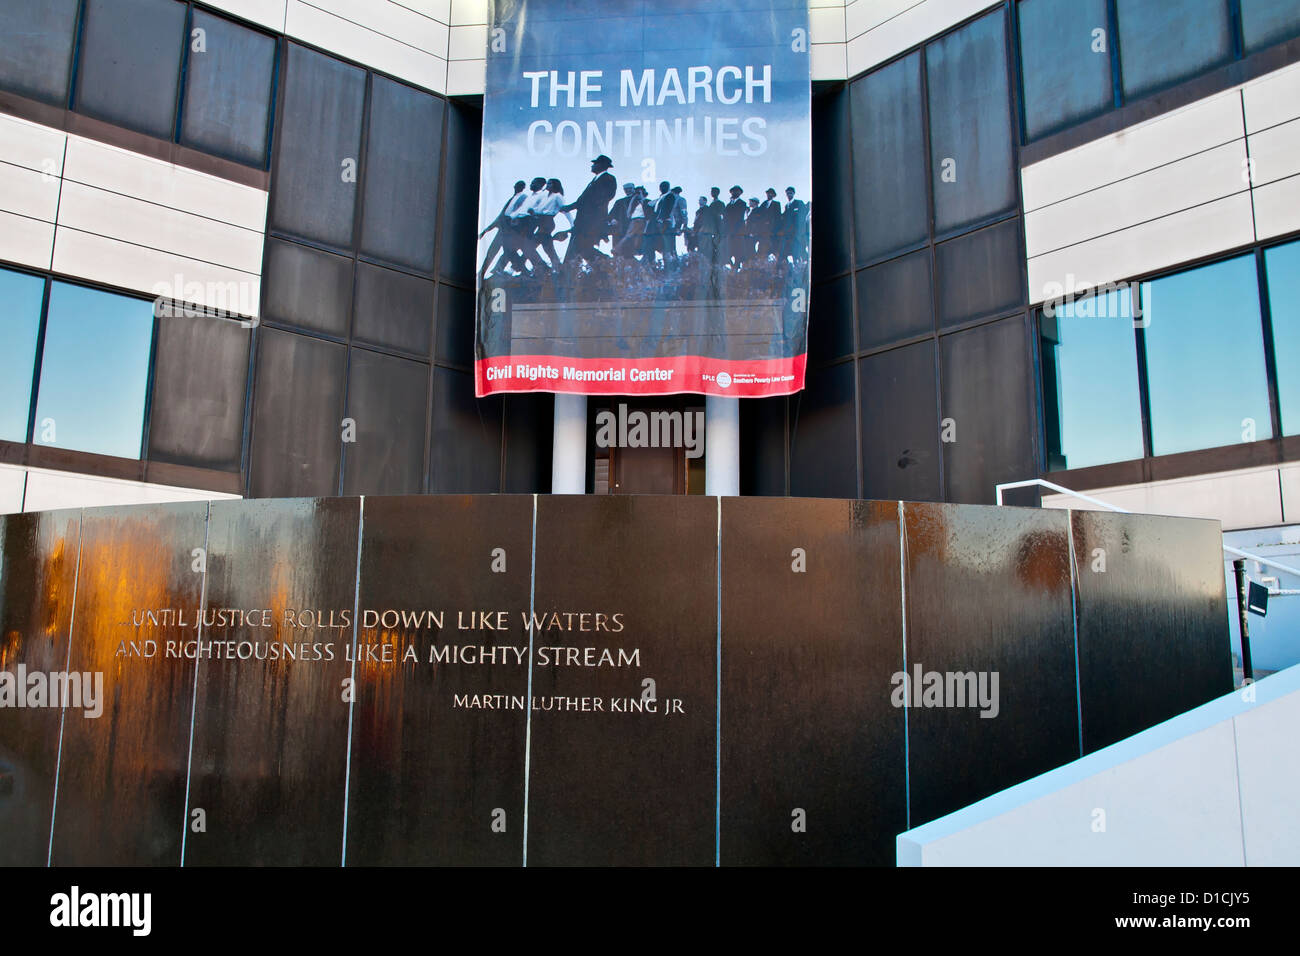 Civil Rights Memorial ,Southern Poverty Law Center, Montgomry, Alabama, USA - Stock Image